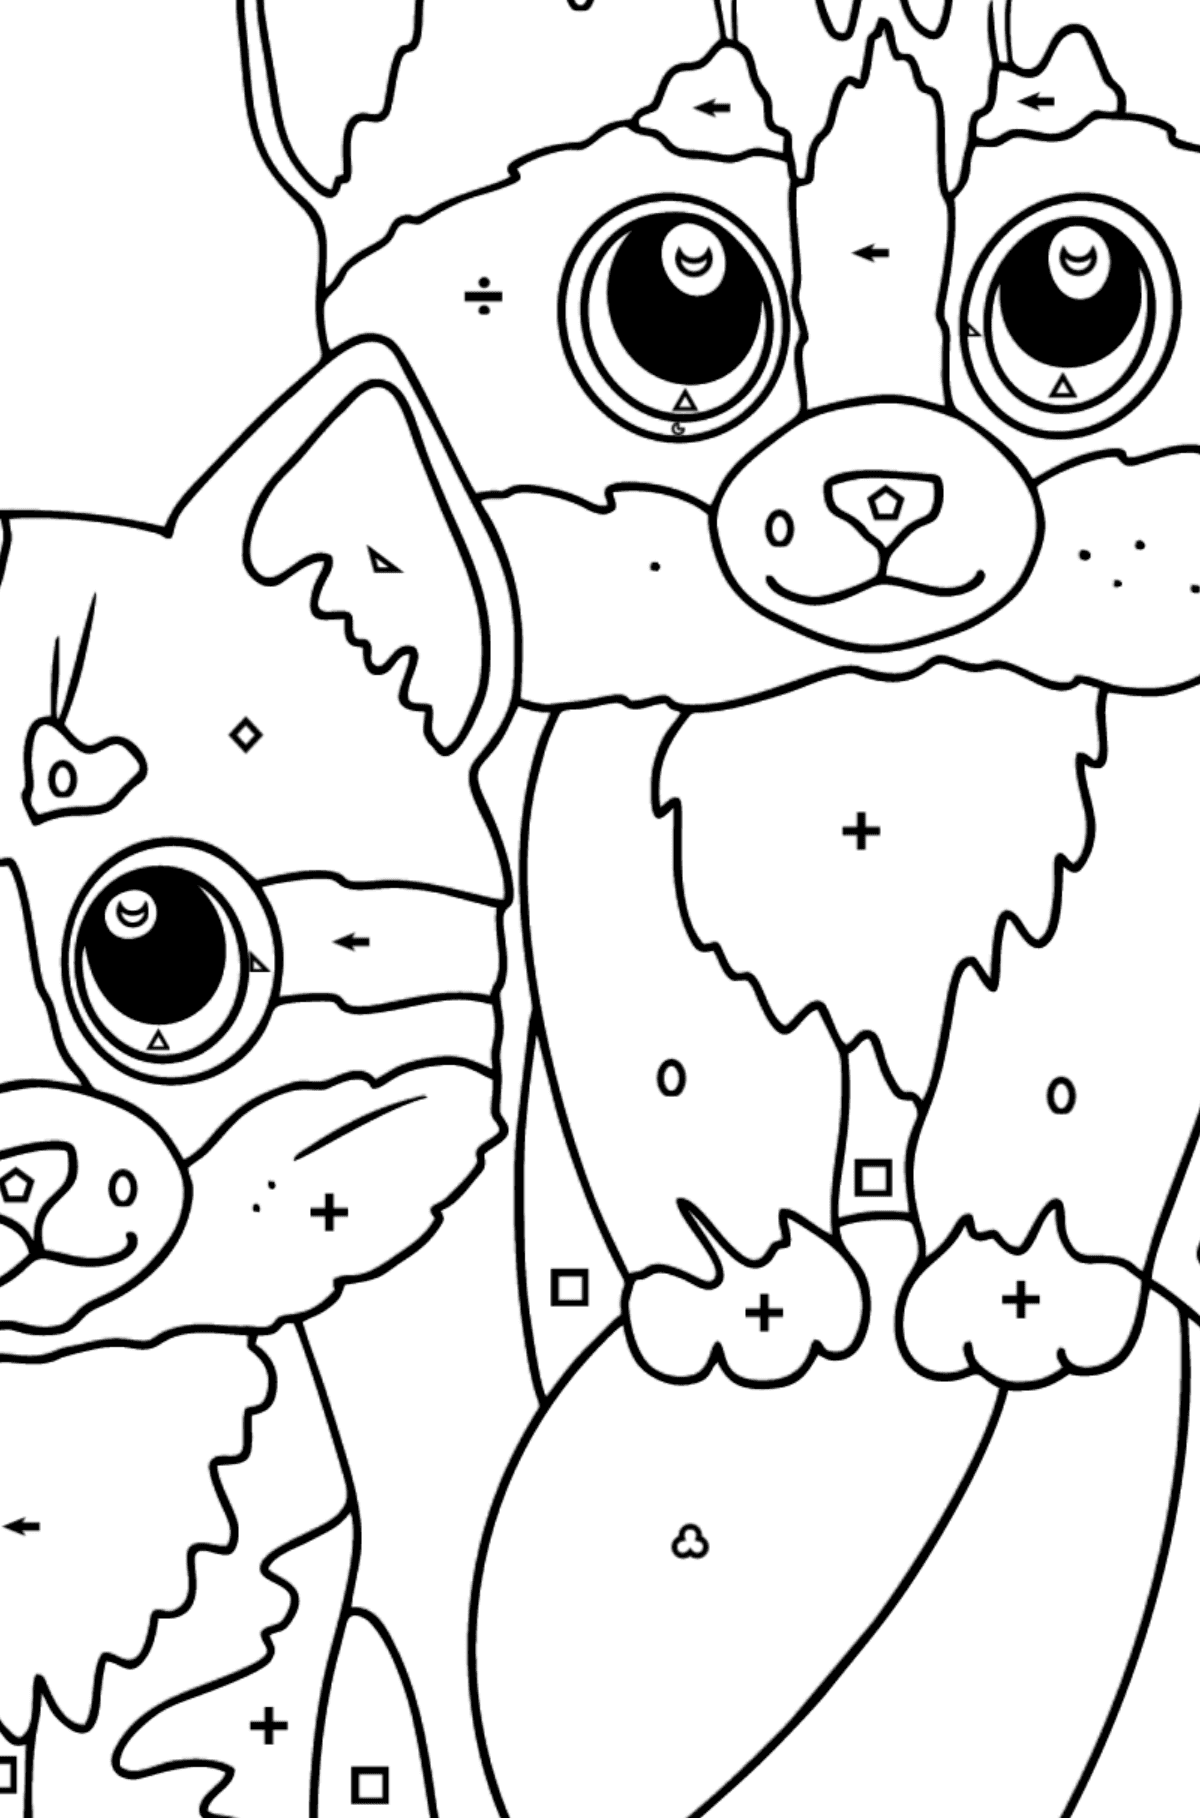 Coloring Page - Two Kittens with a Ball - Coloring by Symbols and Geometric Shapes for Kids